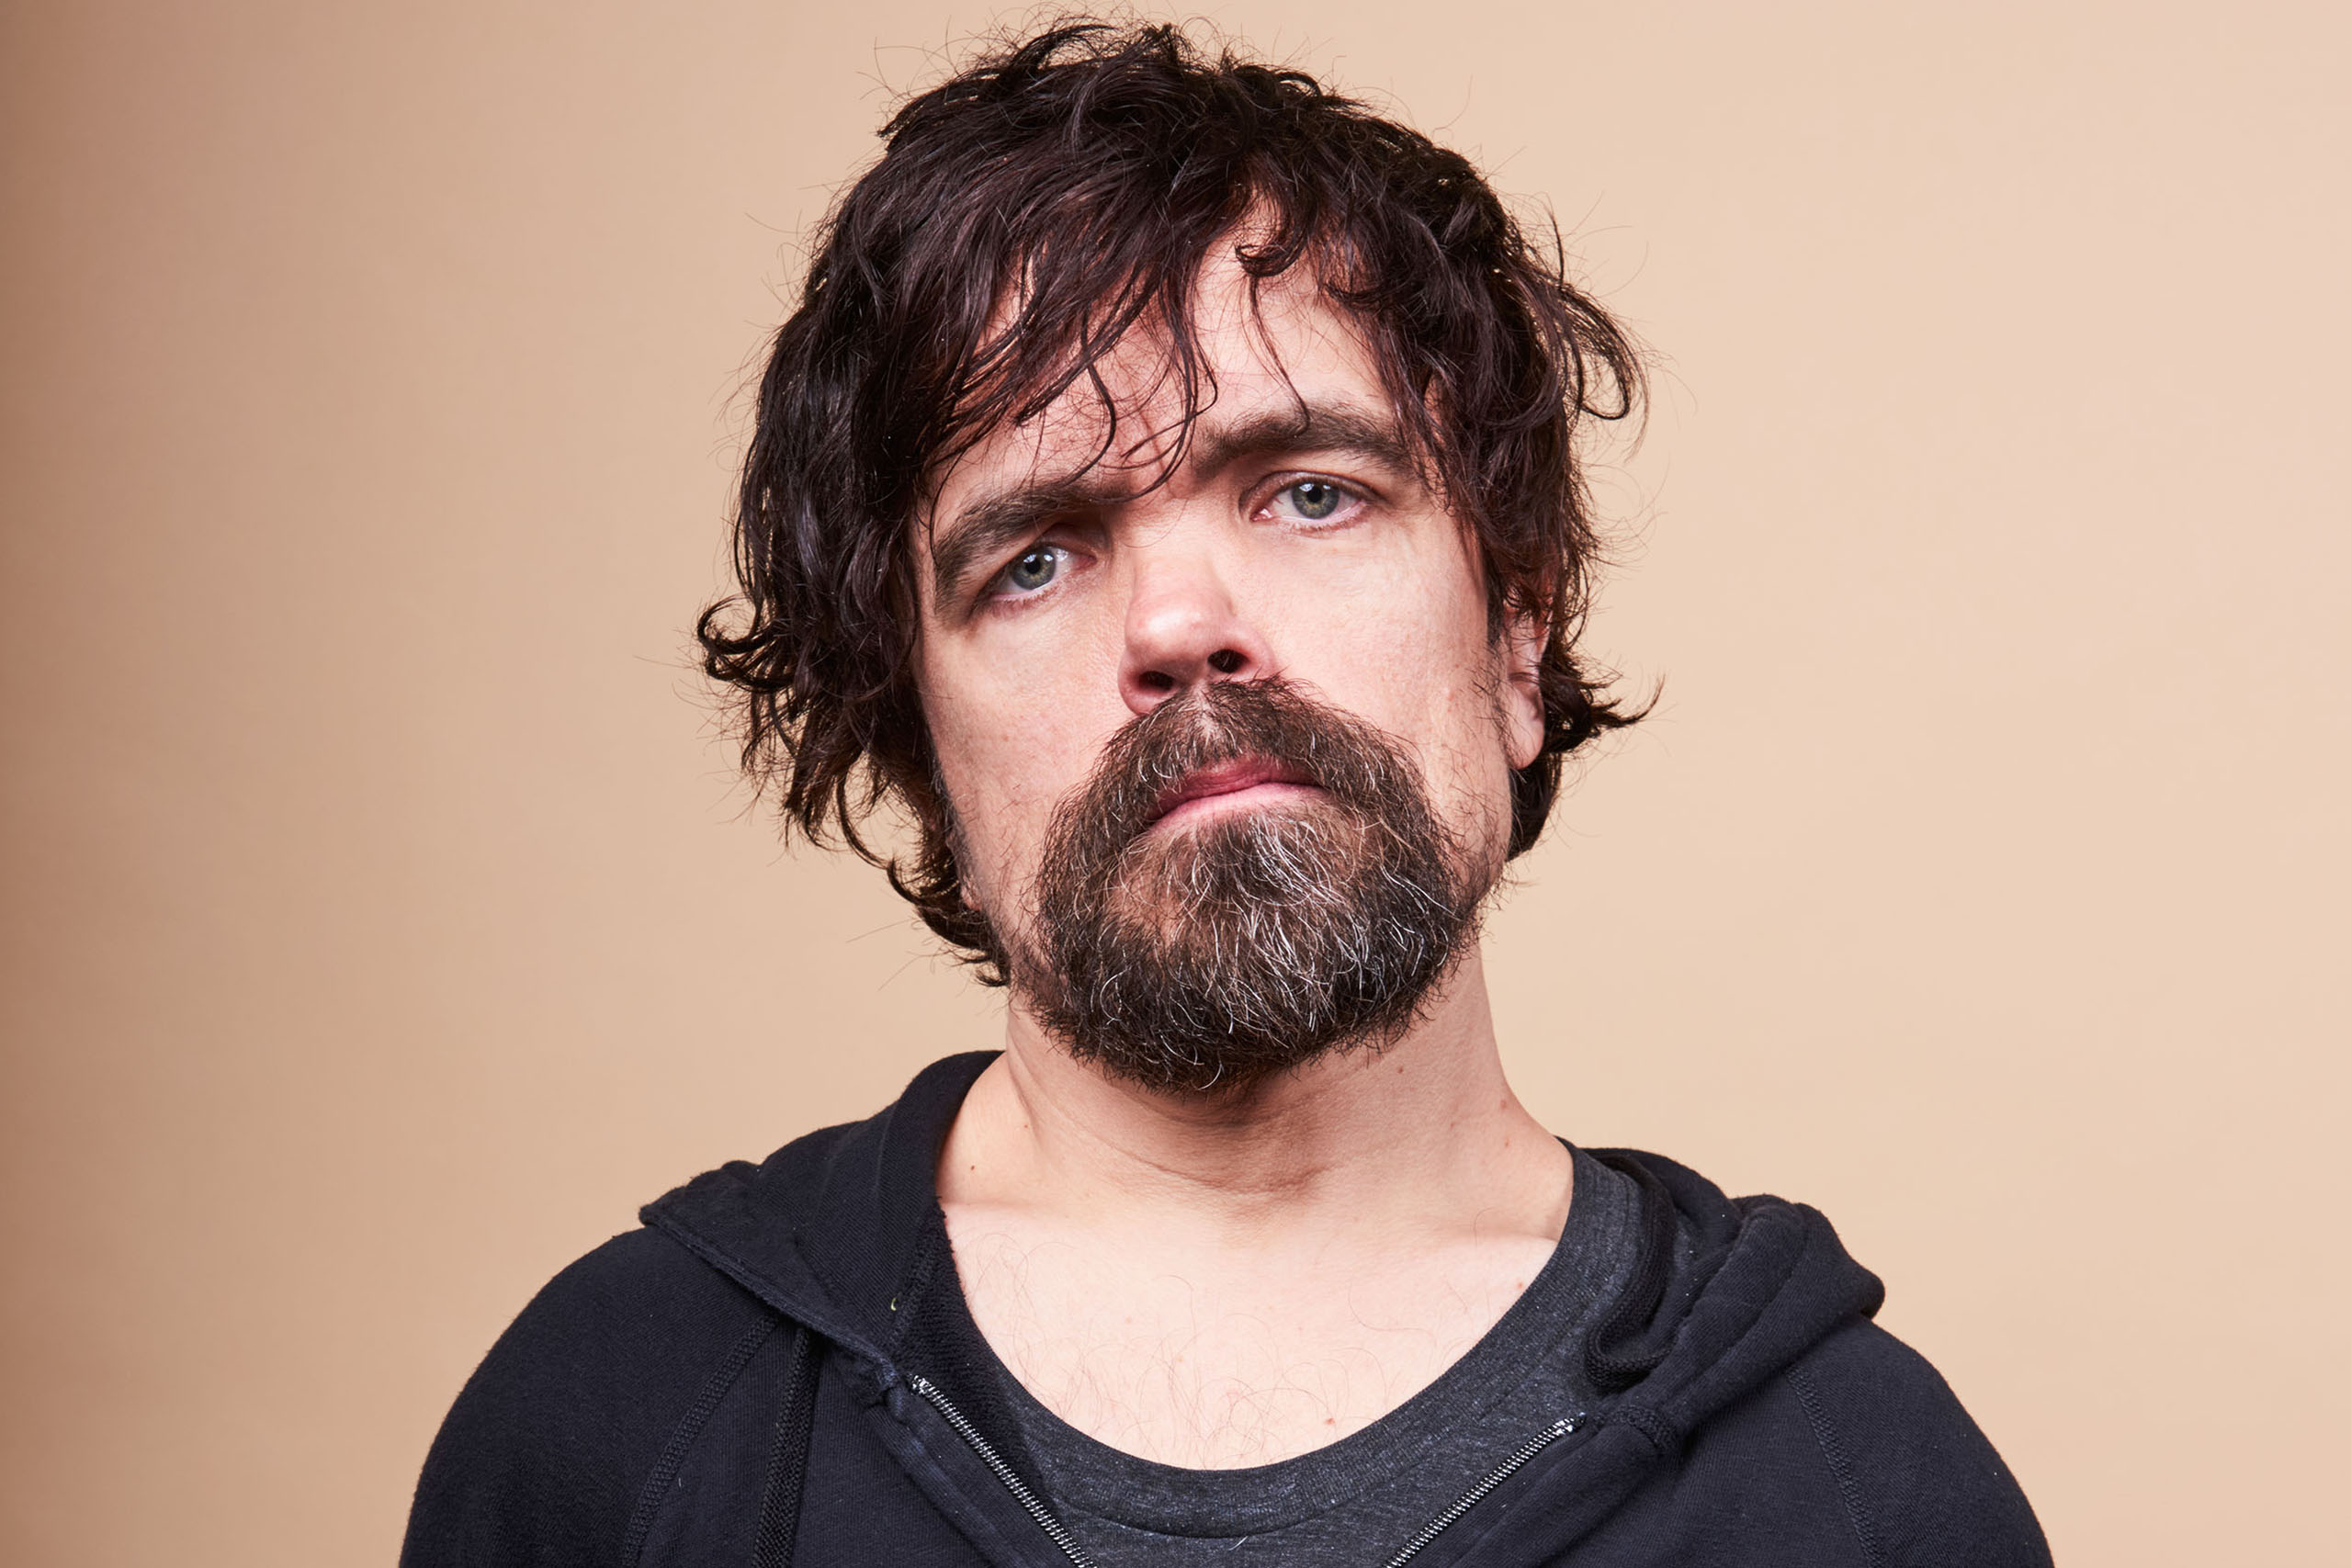 Peter Dinklage Nationality, Religion, Family, and Net Worth